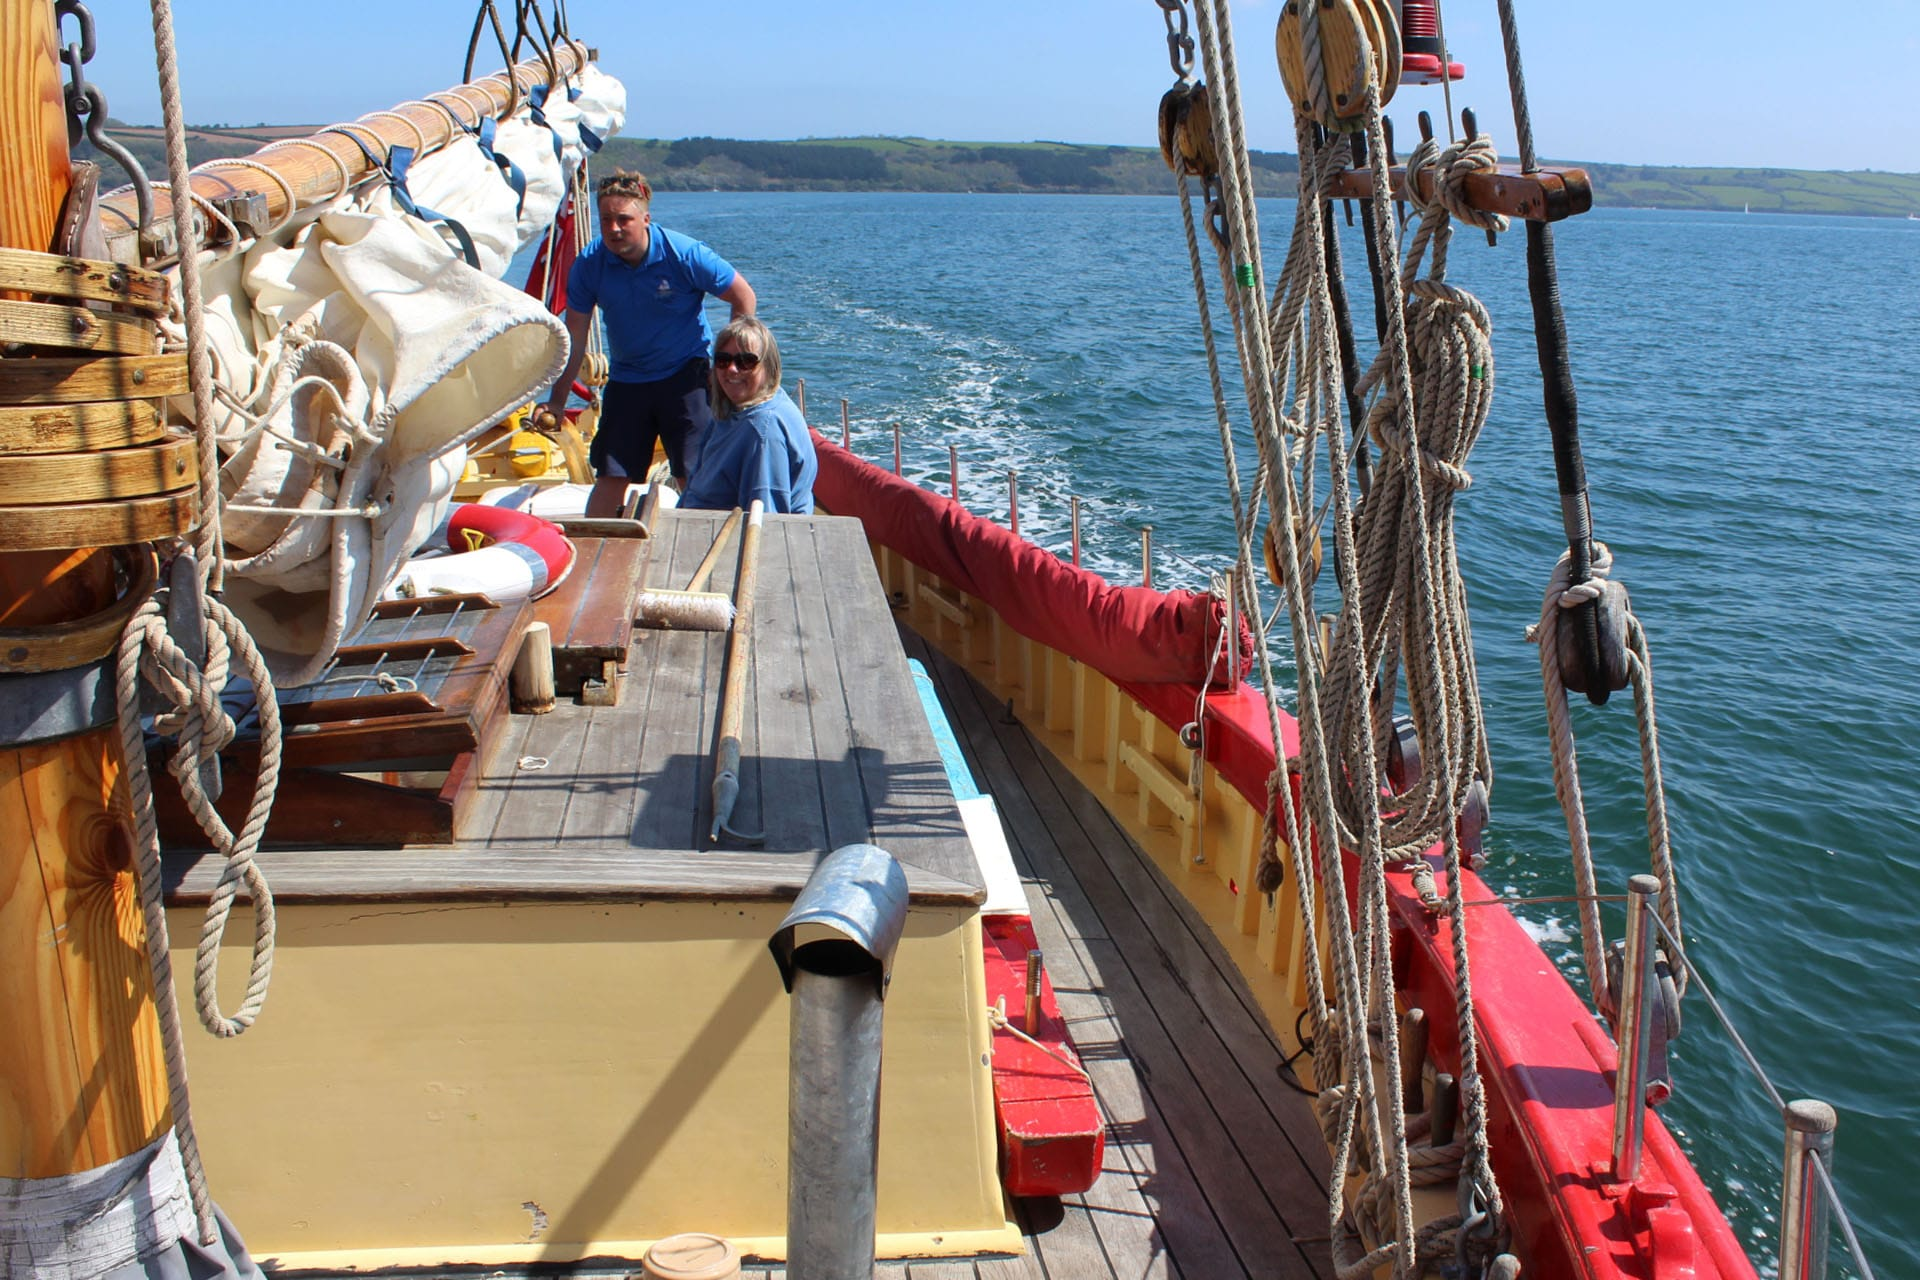 Pettifox guests on deck